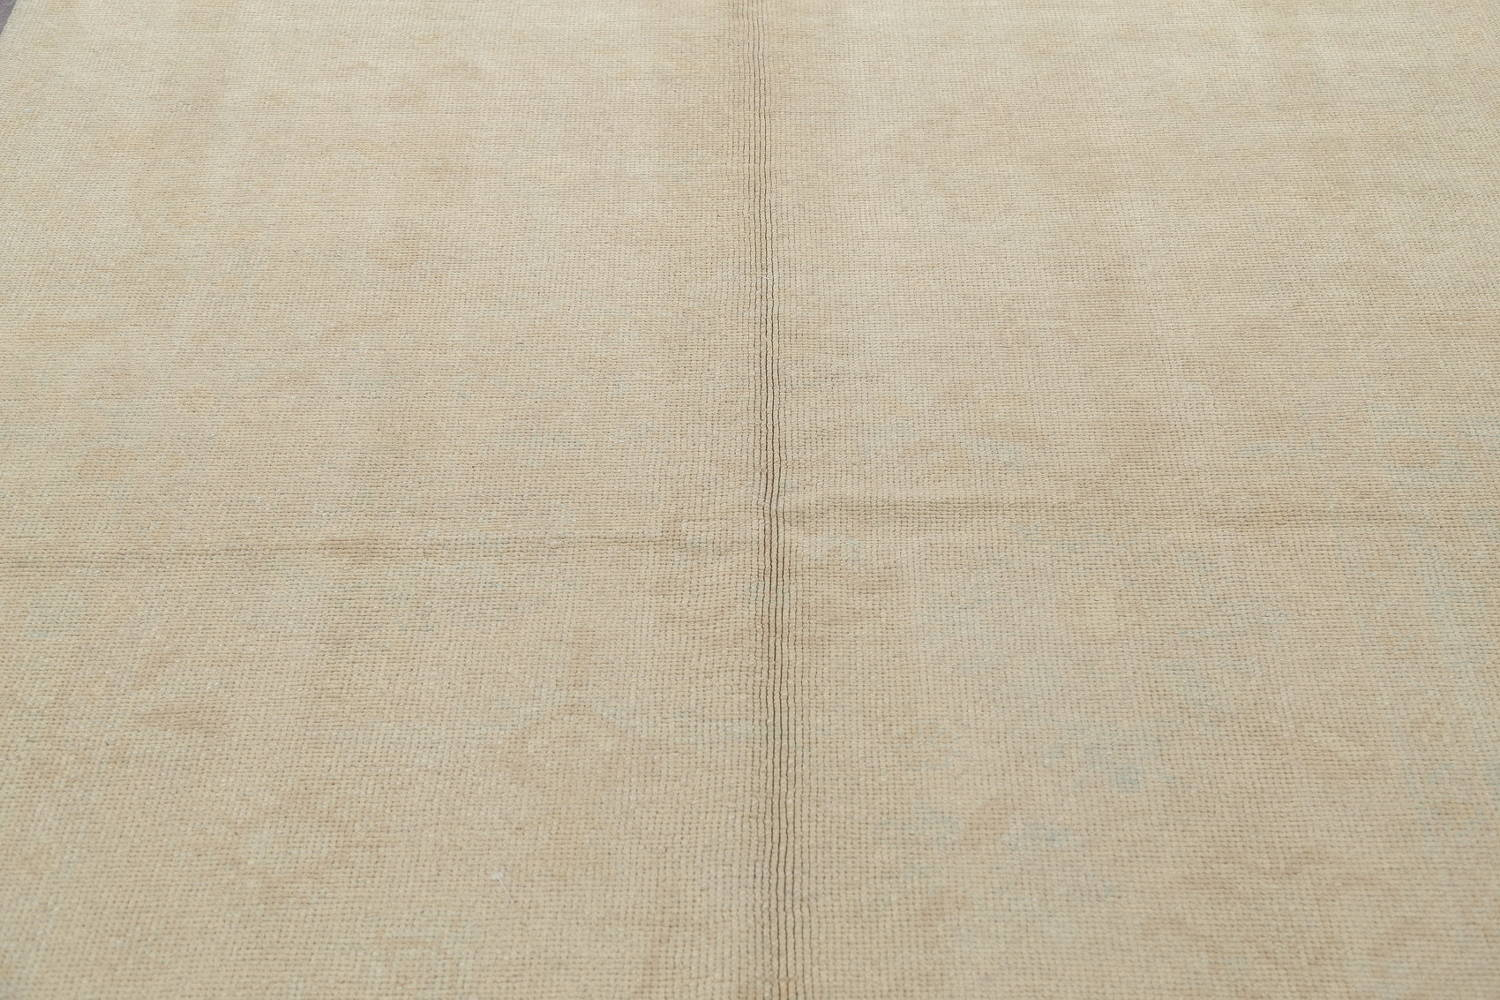 Vegetable Dye Muted Gold Oushak Turkish Hand-Knotted Runner Rug 6x15 image 10